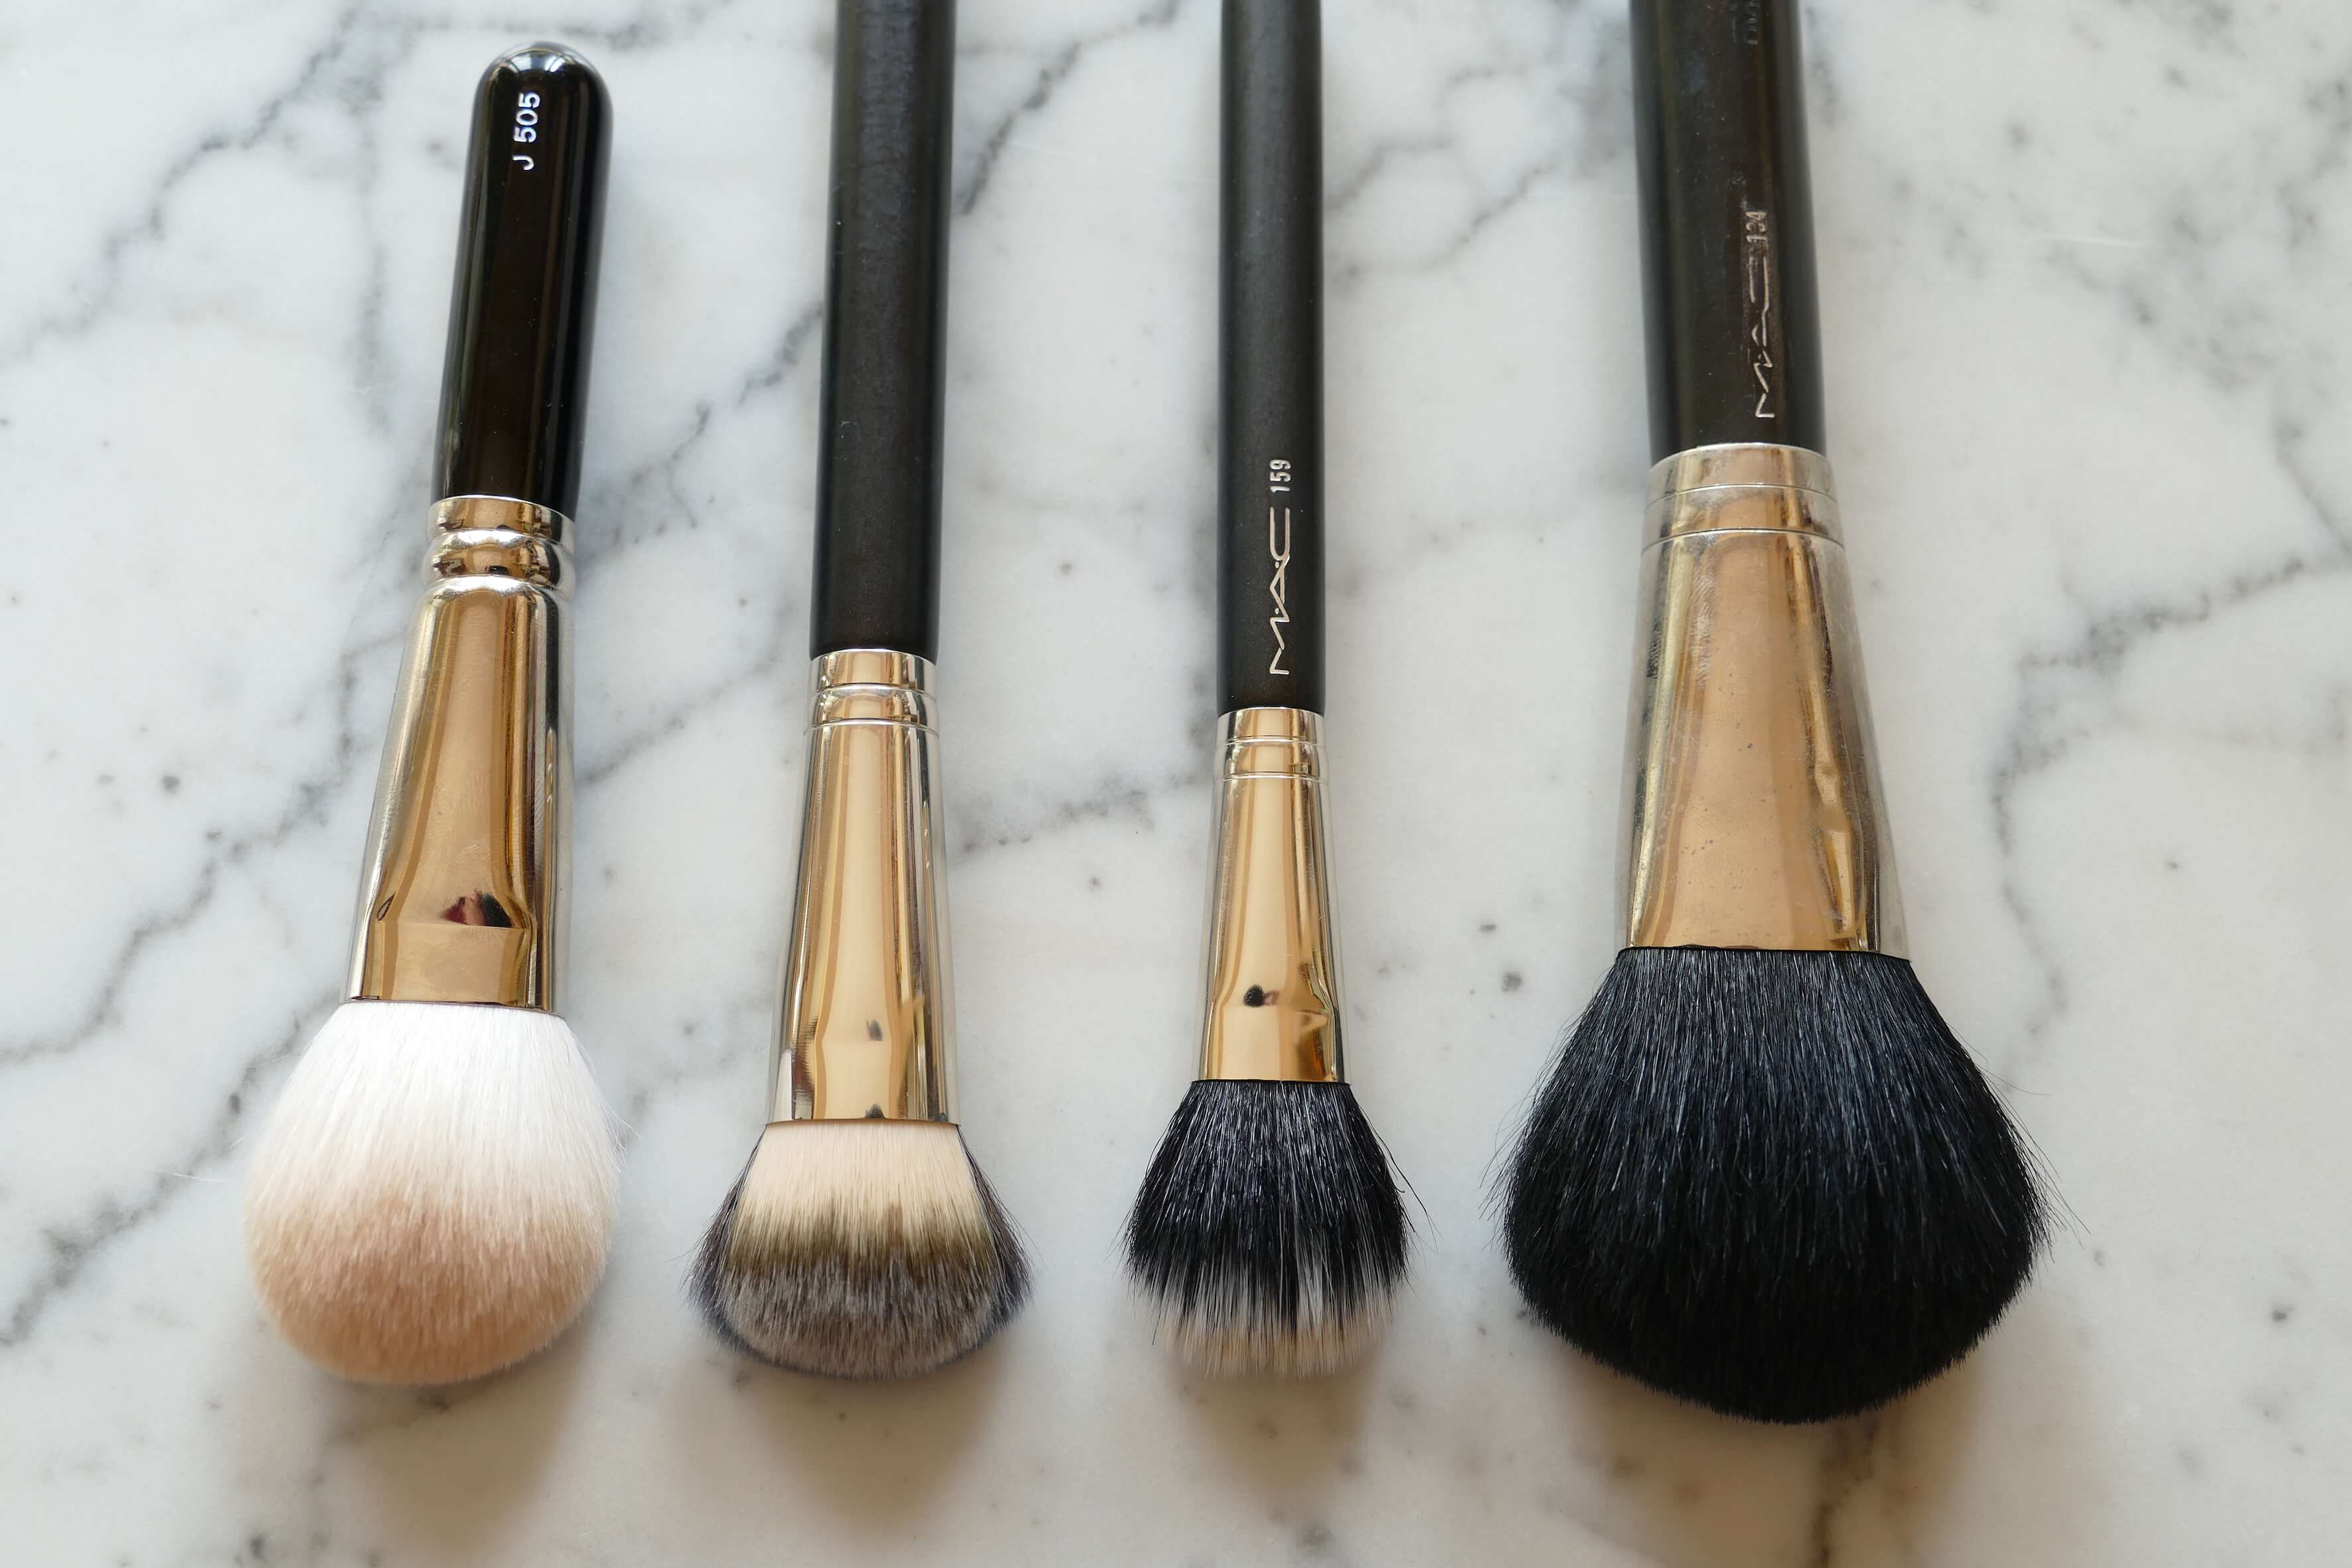 Two weeks, two brushes: Hakuhodo brush review - twindly beauty blog